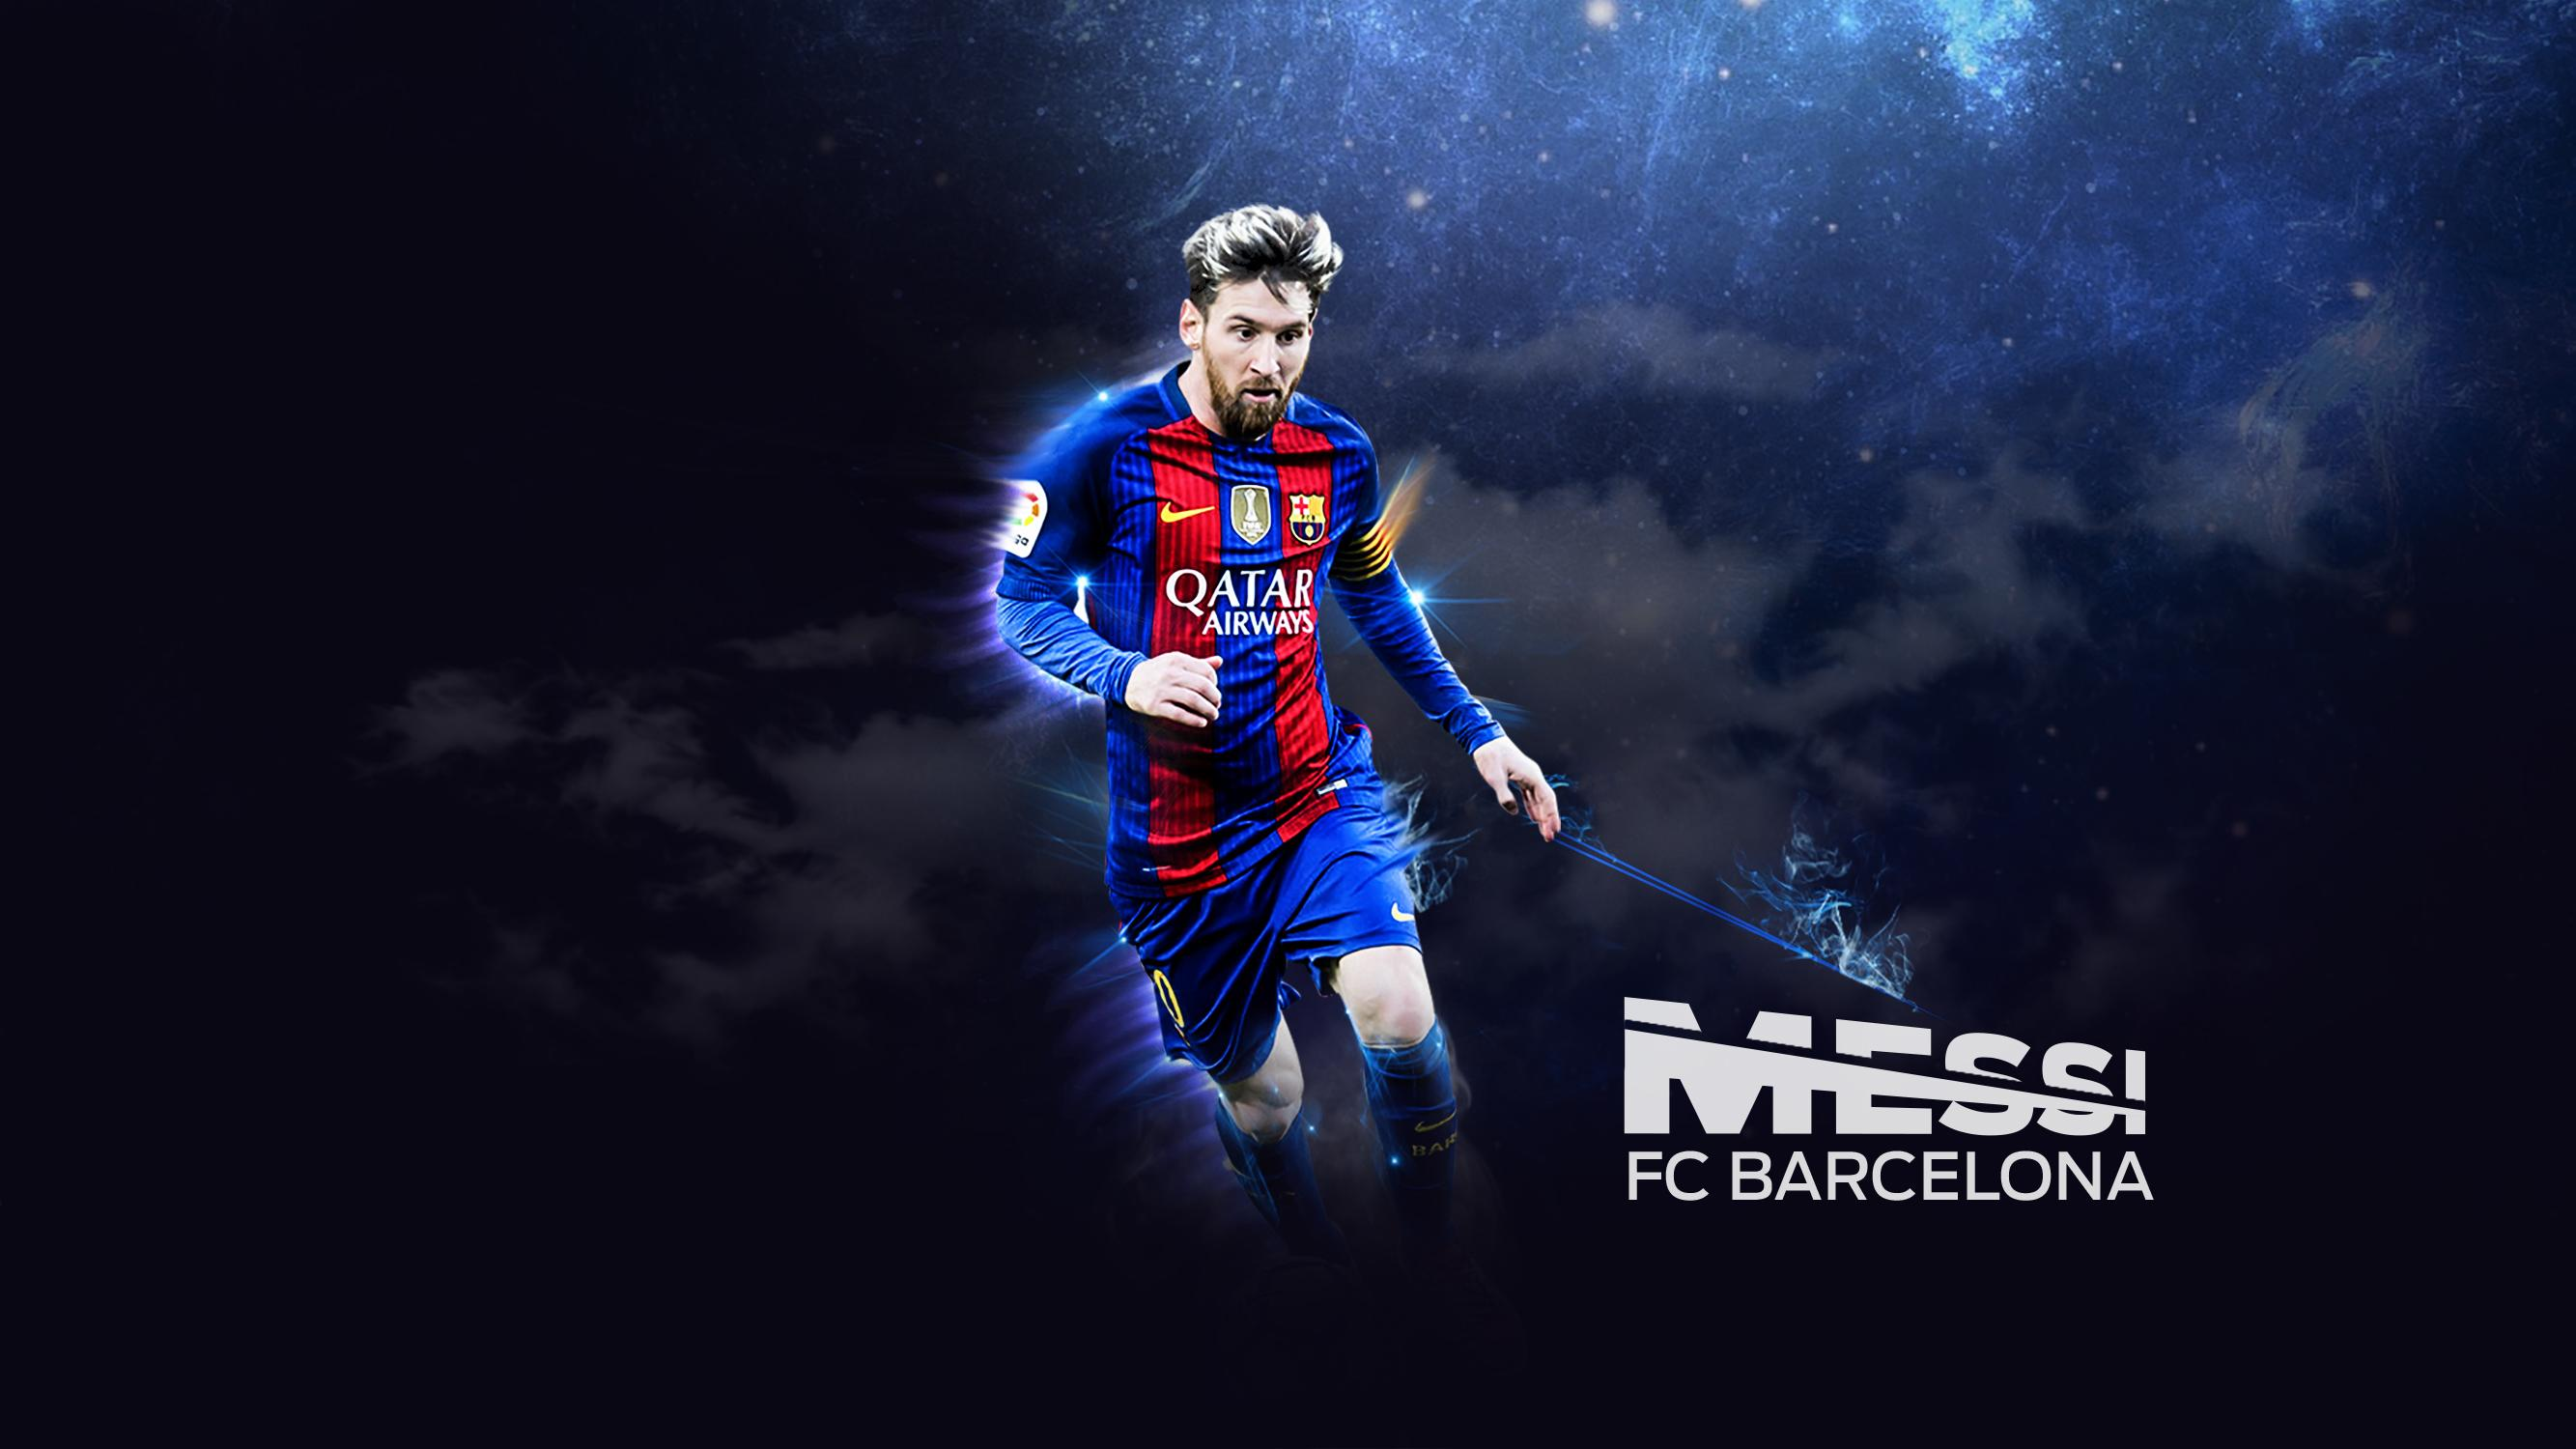 Best 20 Lionel Messi Hd Wallpapers | NSF - MUSIC STATION